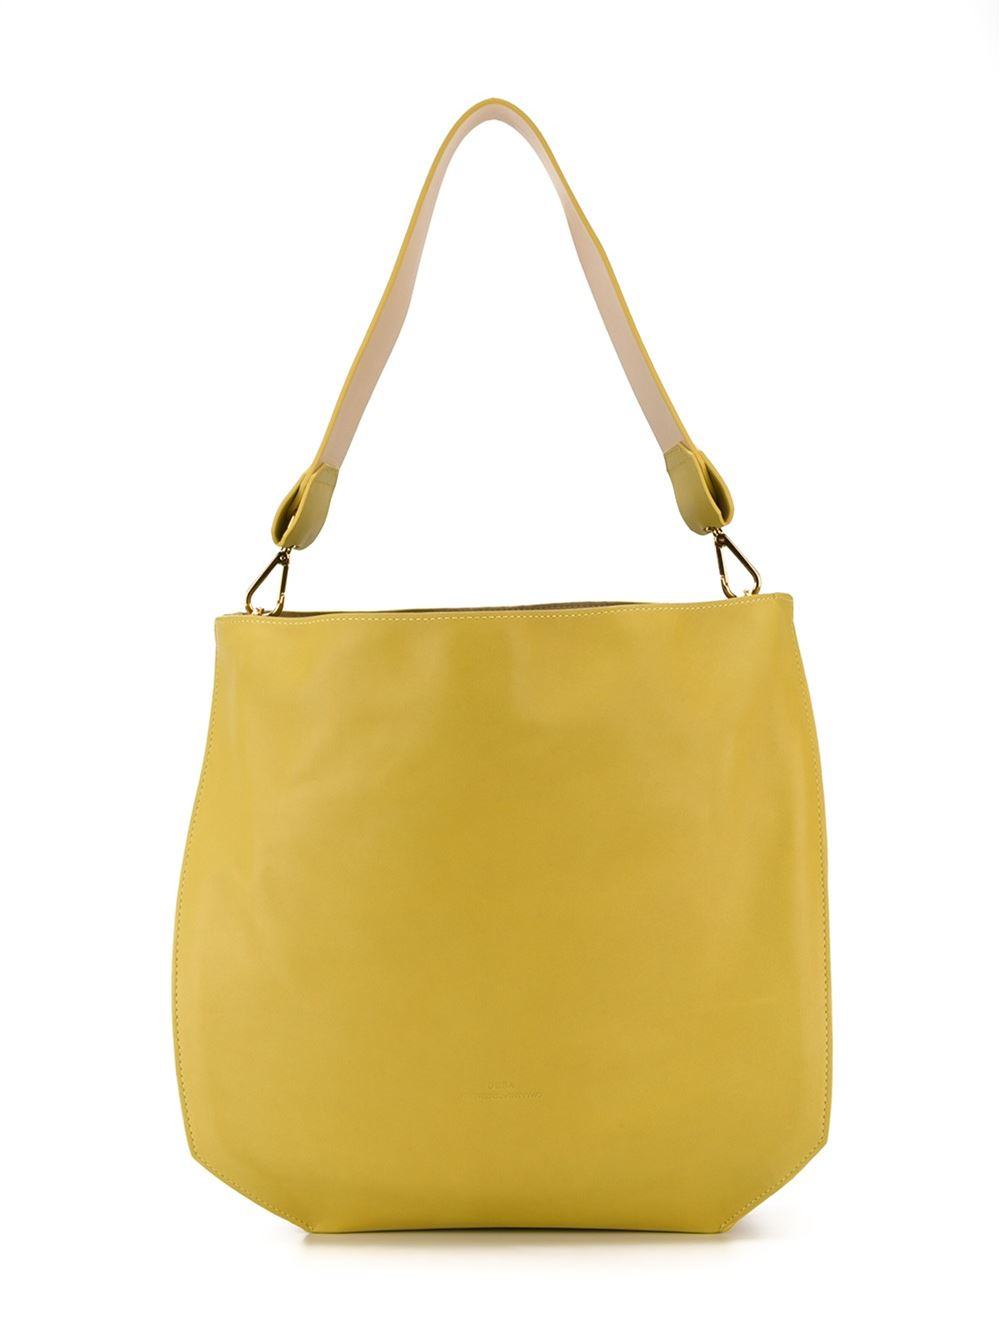 Desa 1972 Large Shoulder Bag In Yellow Yellow Amp Orange